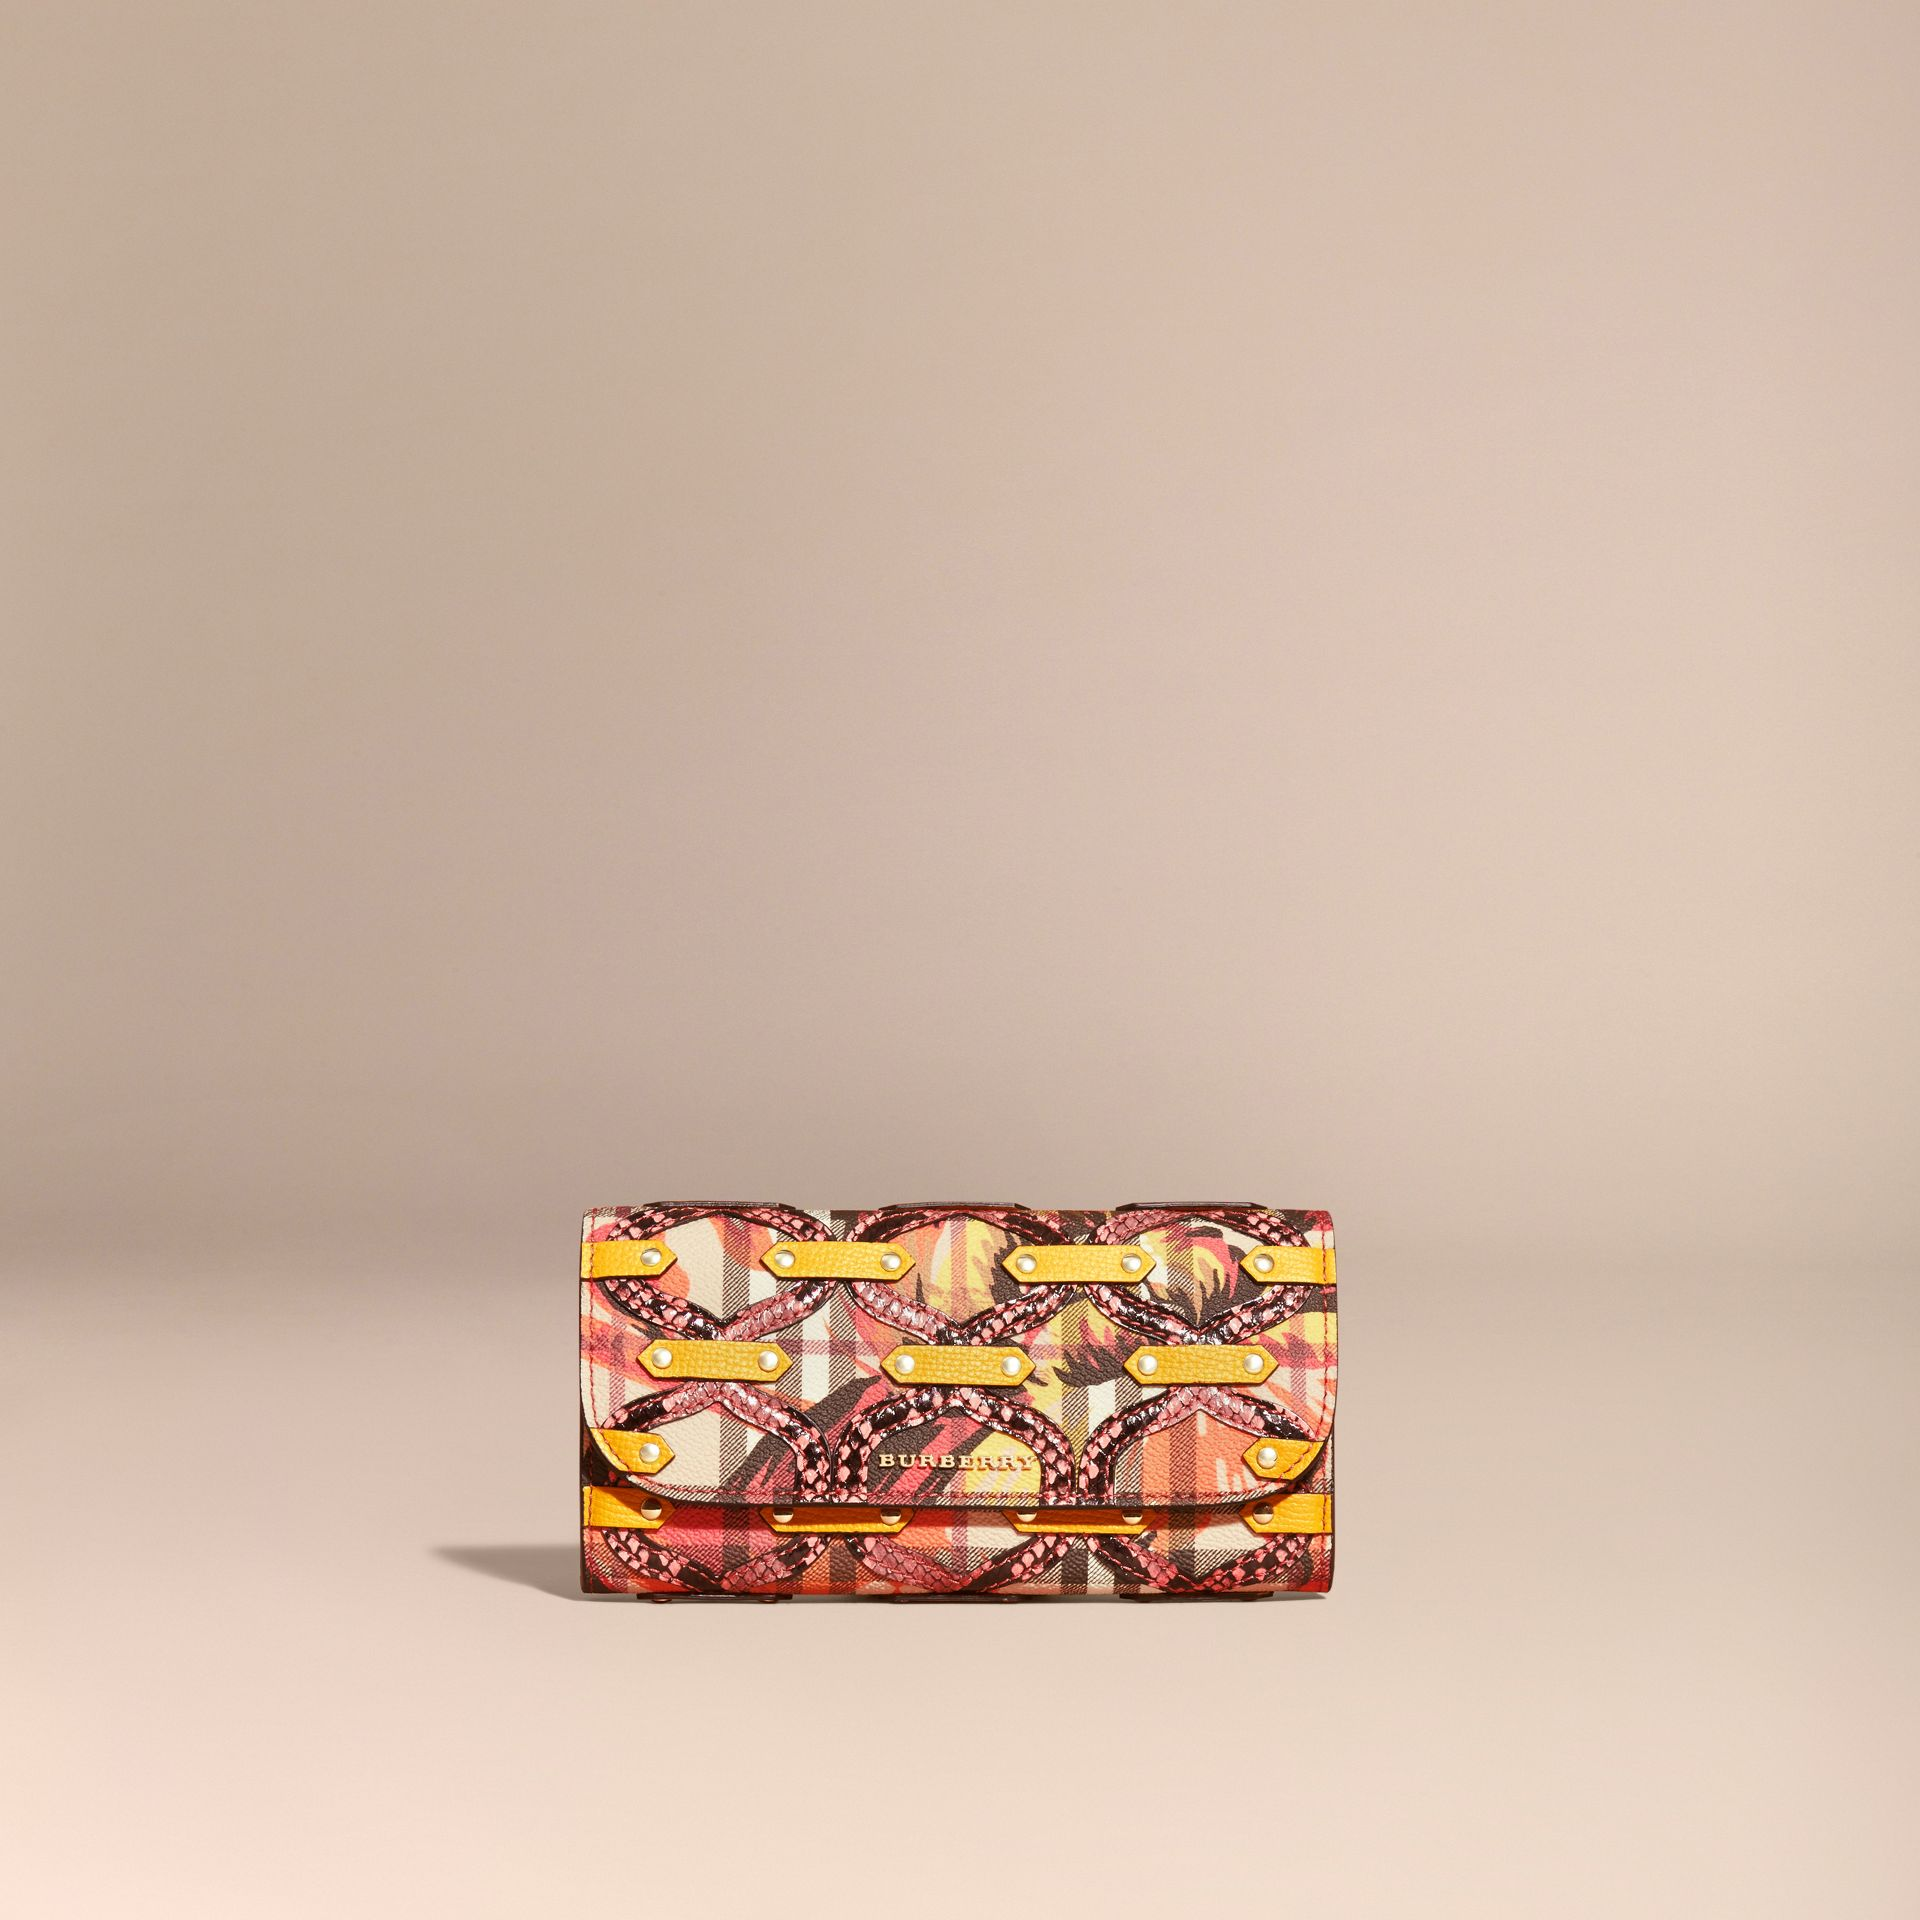 Snakeskin Appliqué Peony Rose Print Haymarket Check Continental Wallet in Larch Yellow - gallery image 6